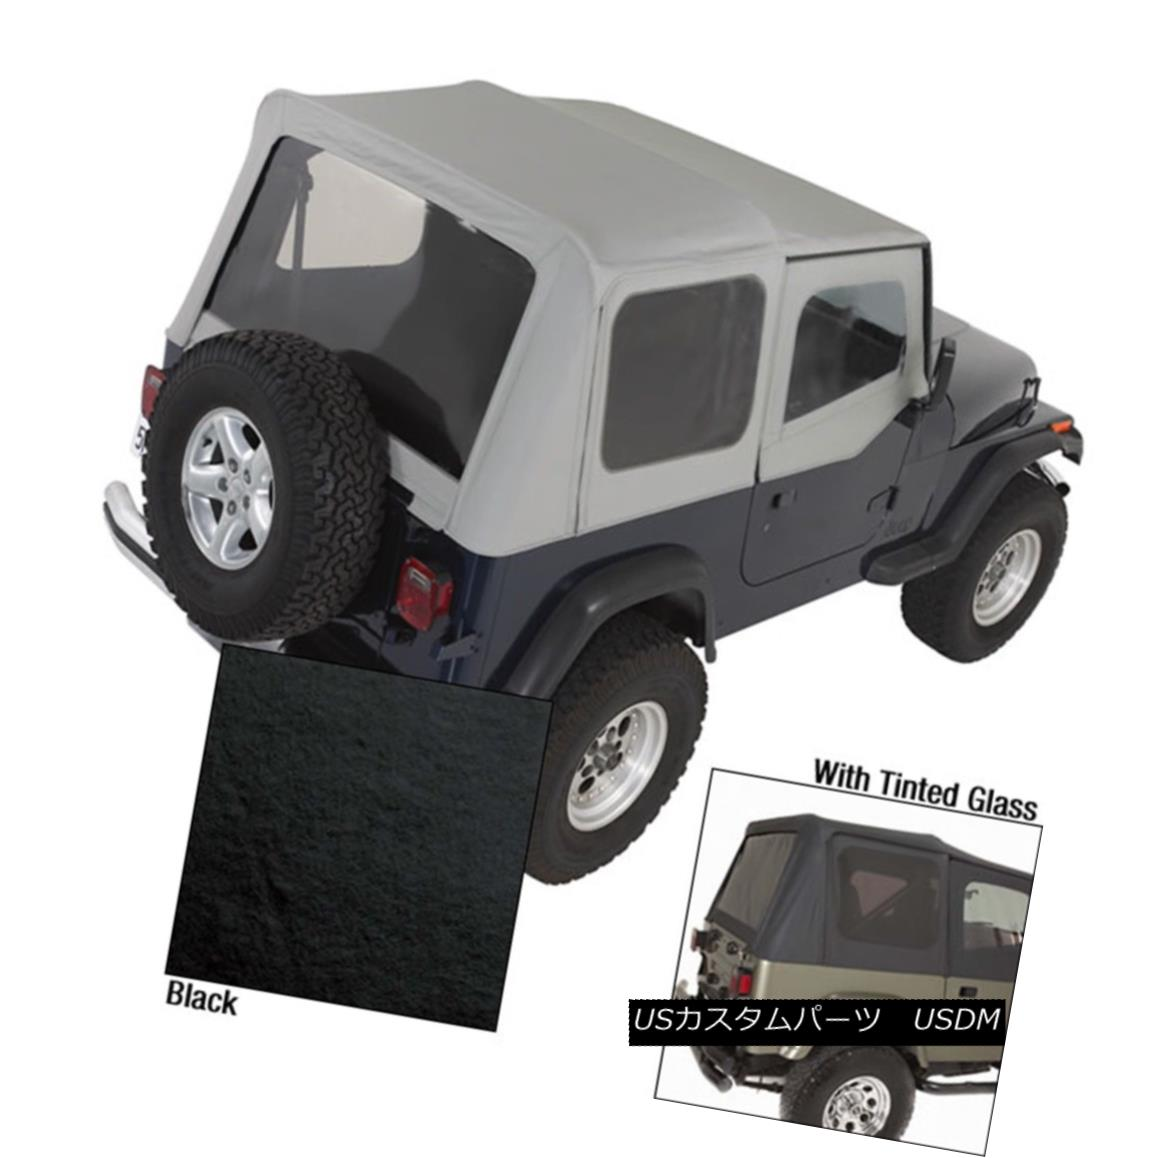 幌・ソフトトップ Rugged Ridge 13722.15 Replacement Soft Top Fits 88-95 Wrangler (YJ) Rugged Ridge 13722.15交換用ソフトトップ88-95 Wrangler(YJ)